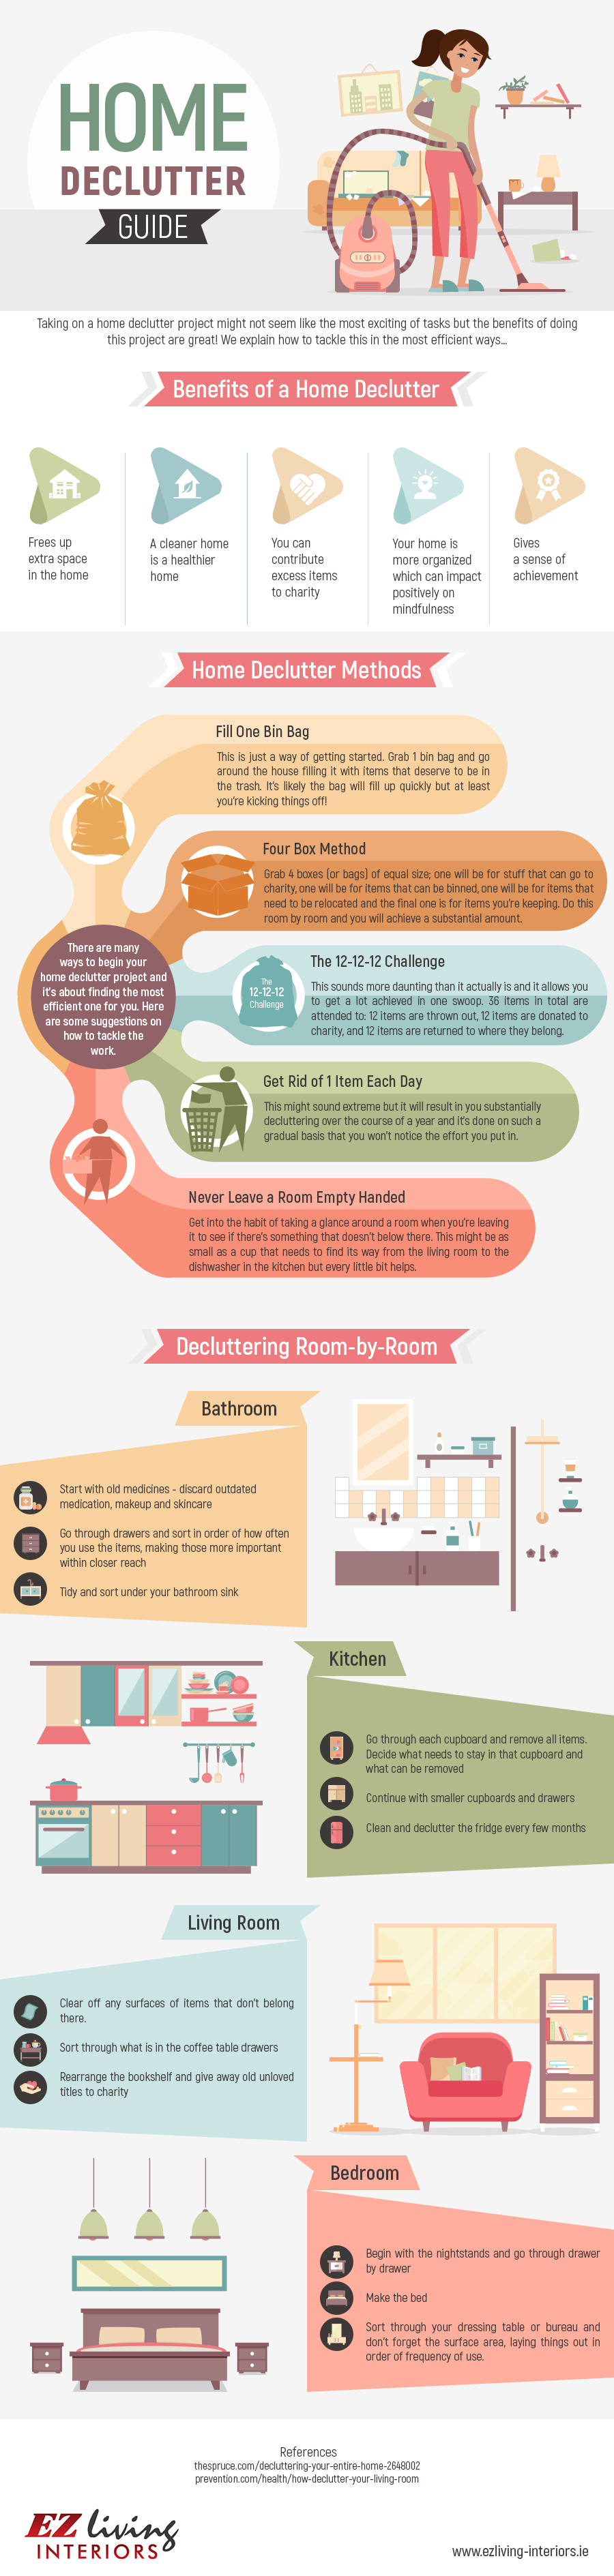 home-declutter-guide-ie-infographic.jpg